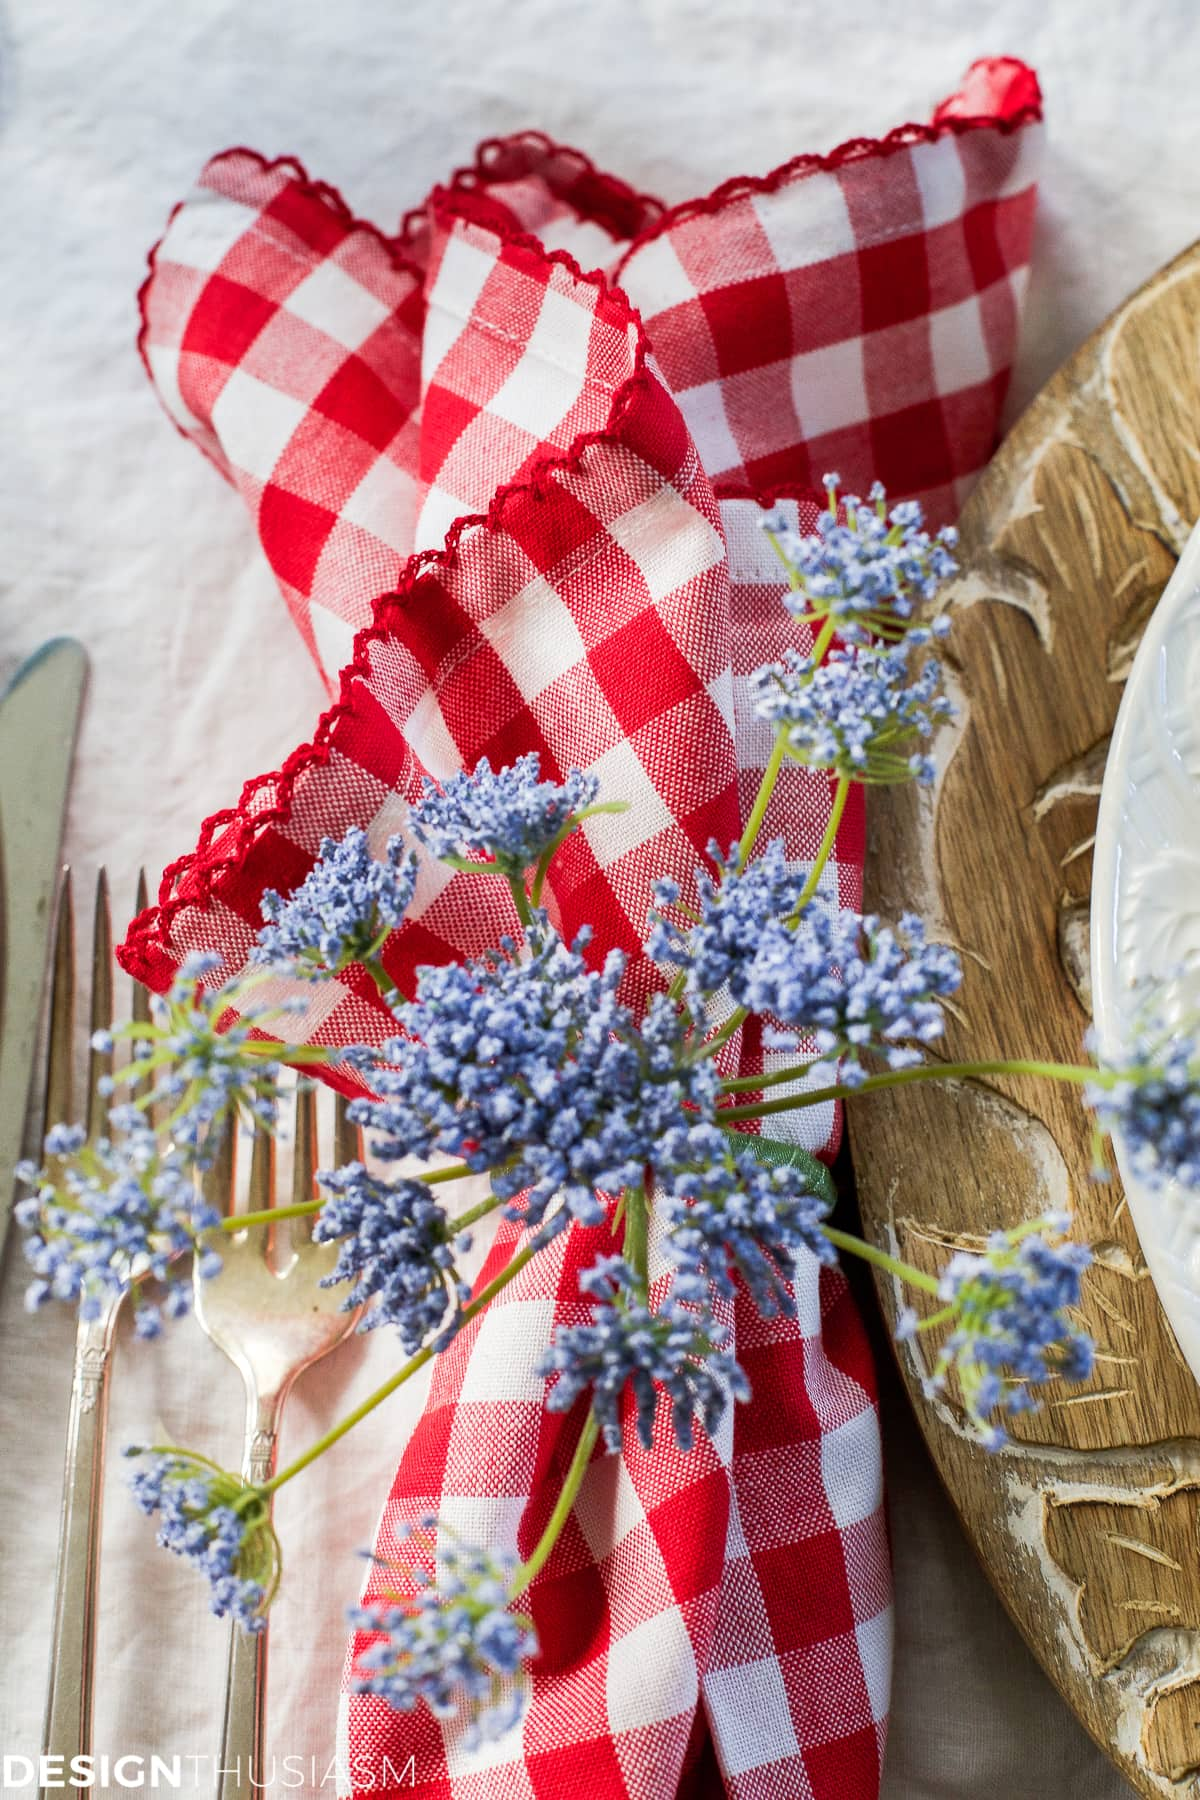 Garden party decorations | Tabletop tips for summer entertaining - designthusiasm.com